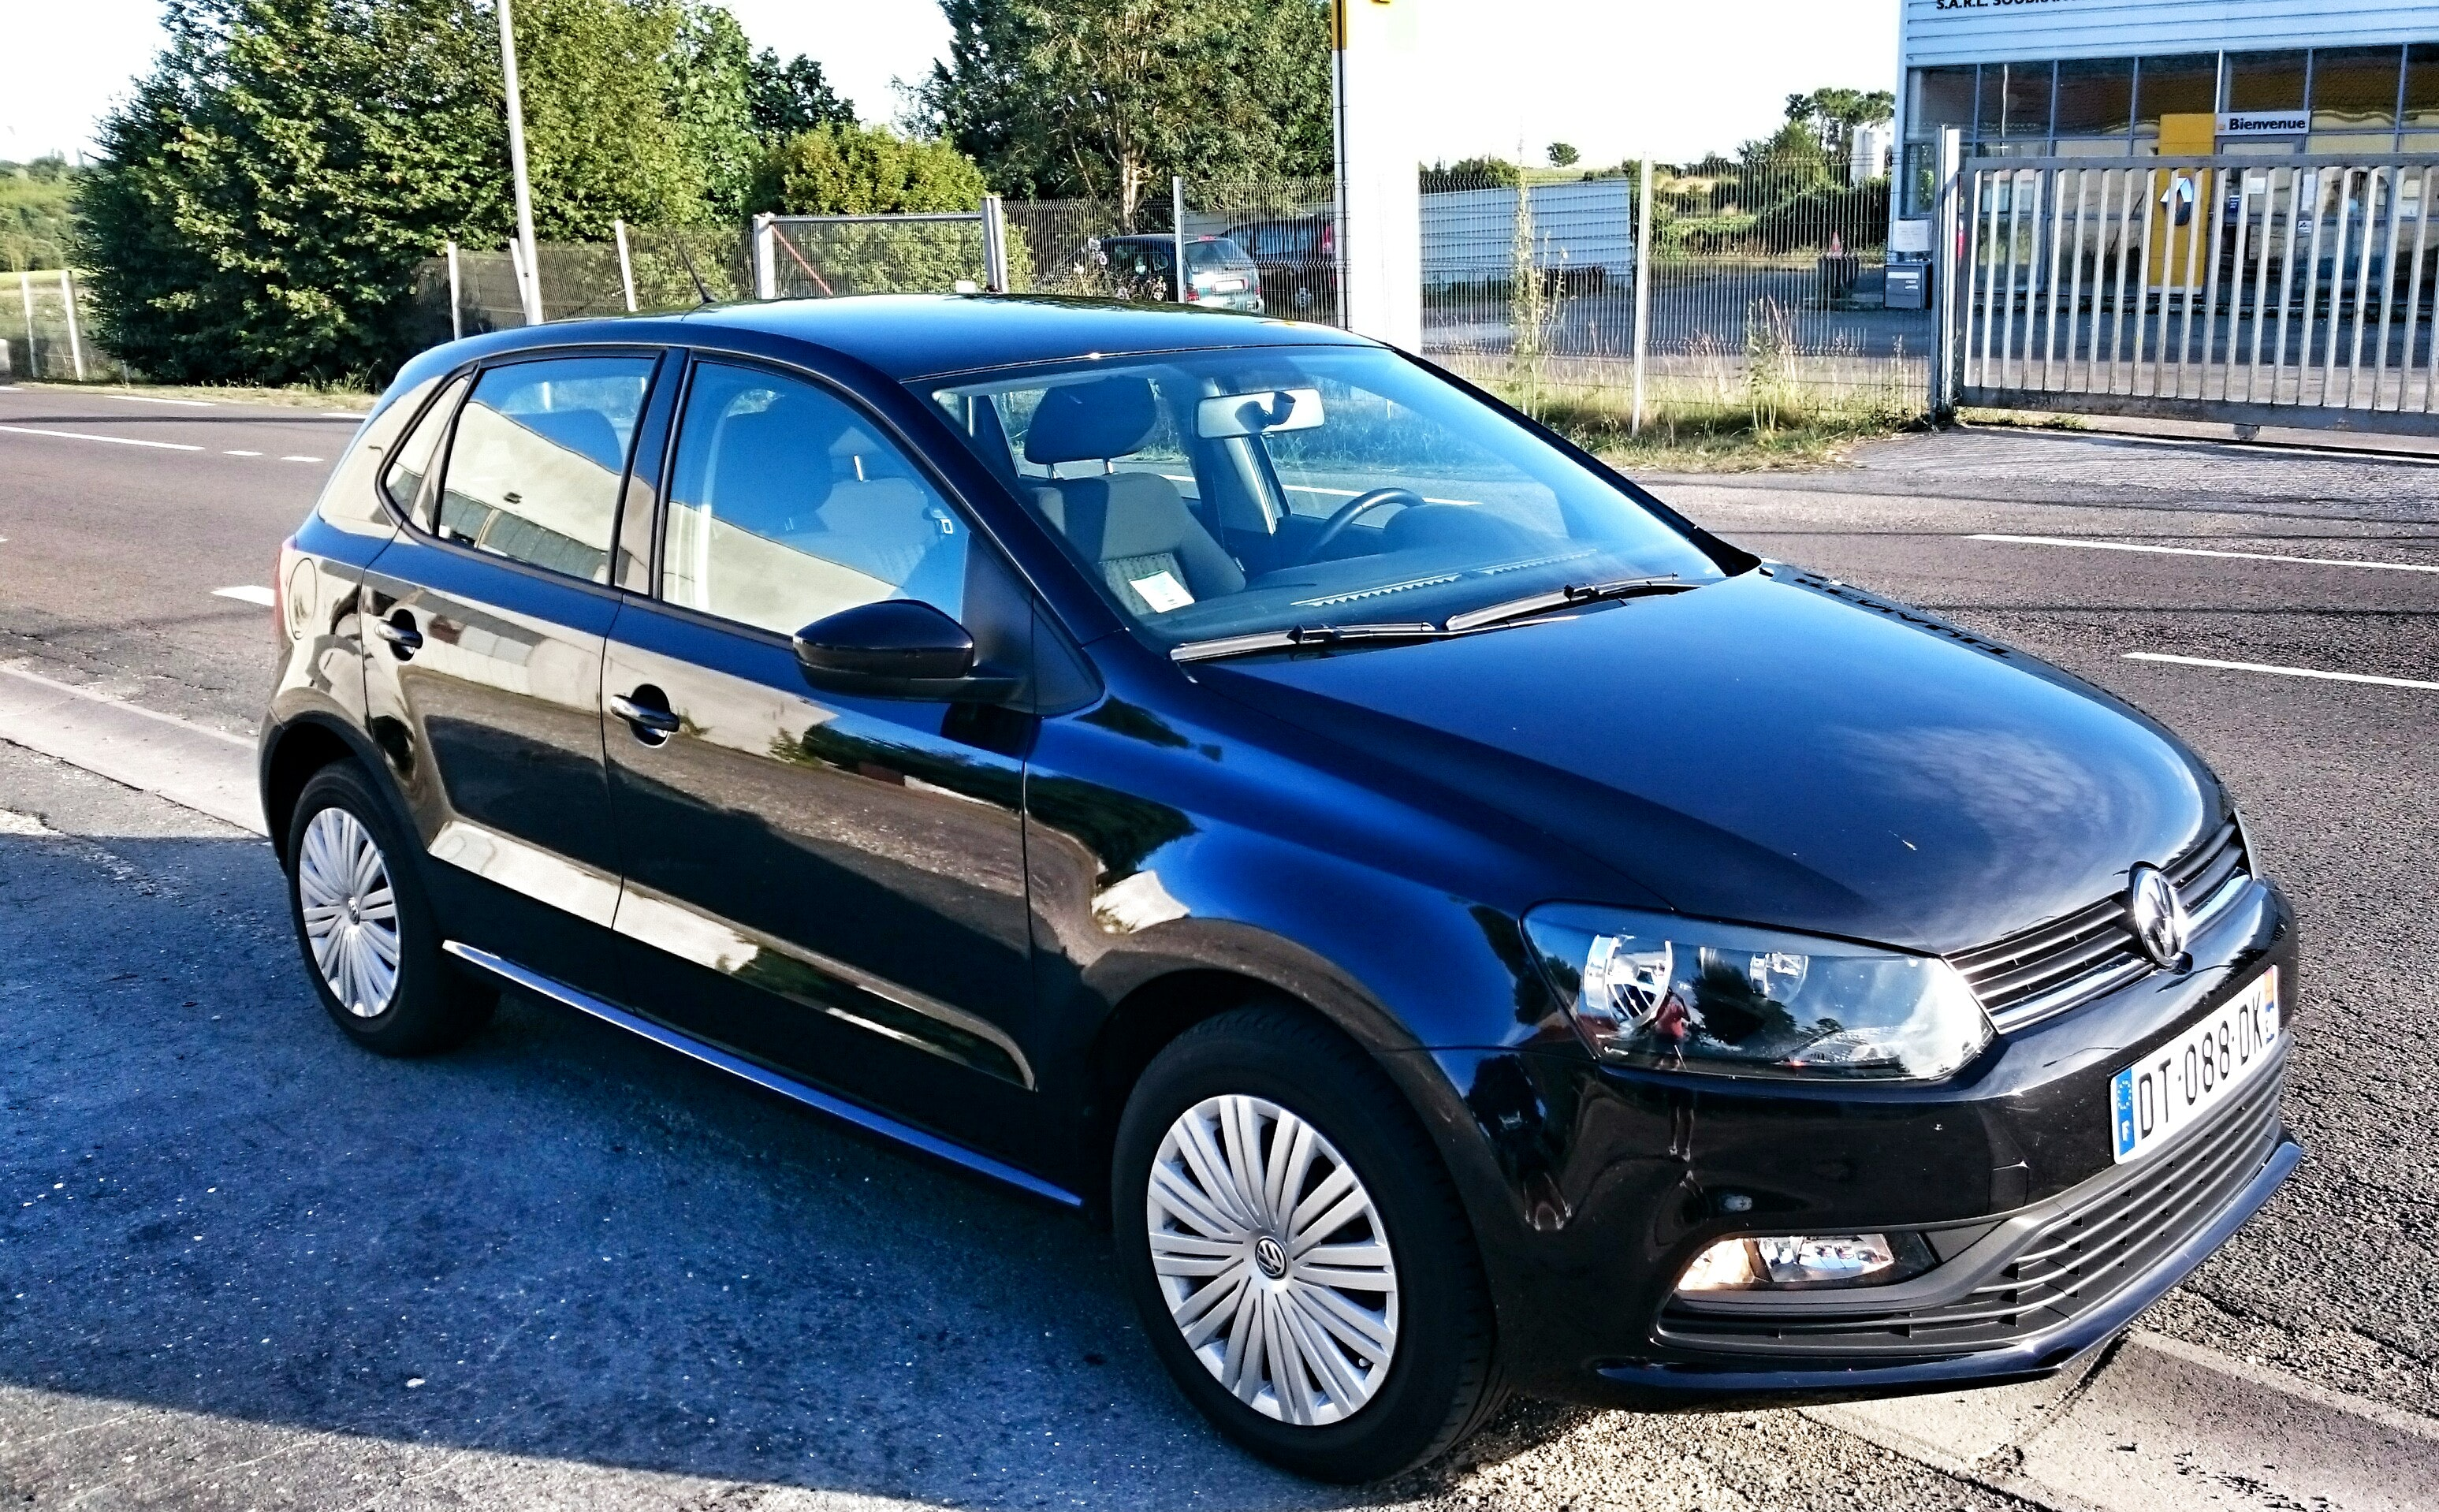 VOLKSWAGEN POLO, 1L essence, 75 CV Trendline BlueMotionStyle (Noire), 2014, Essence